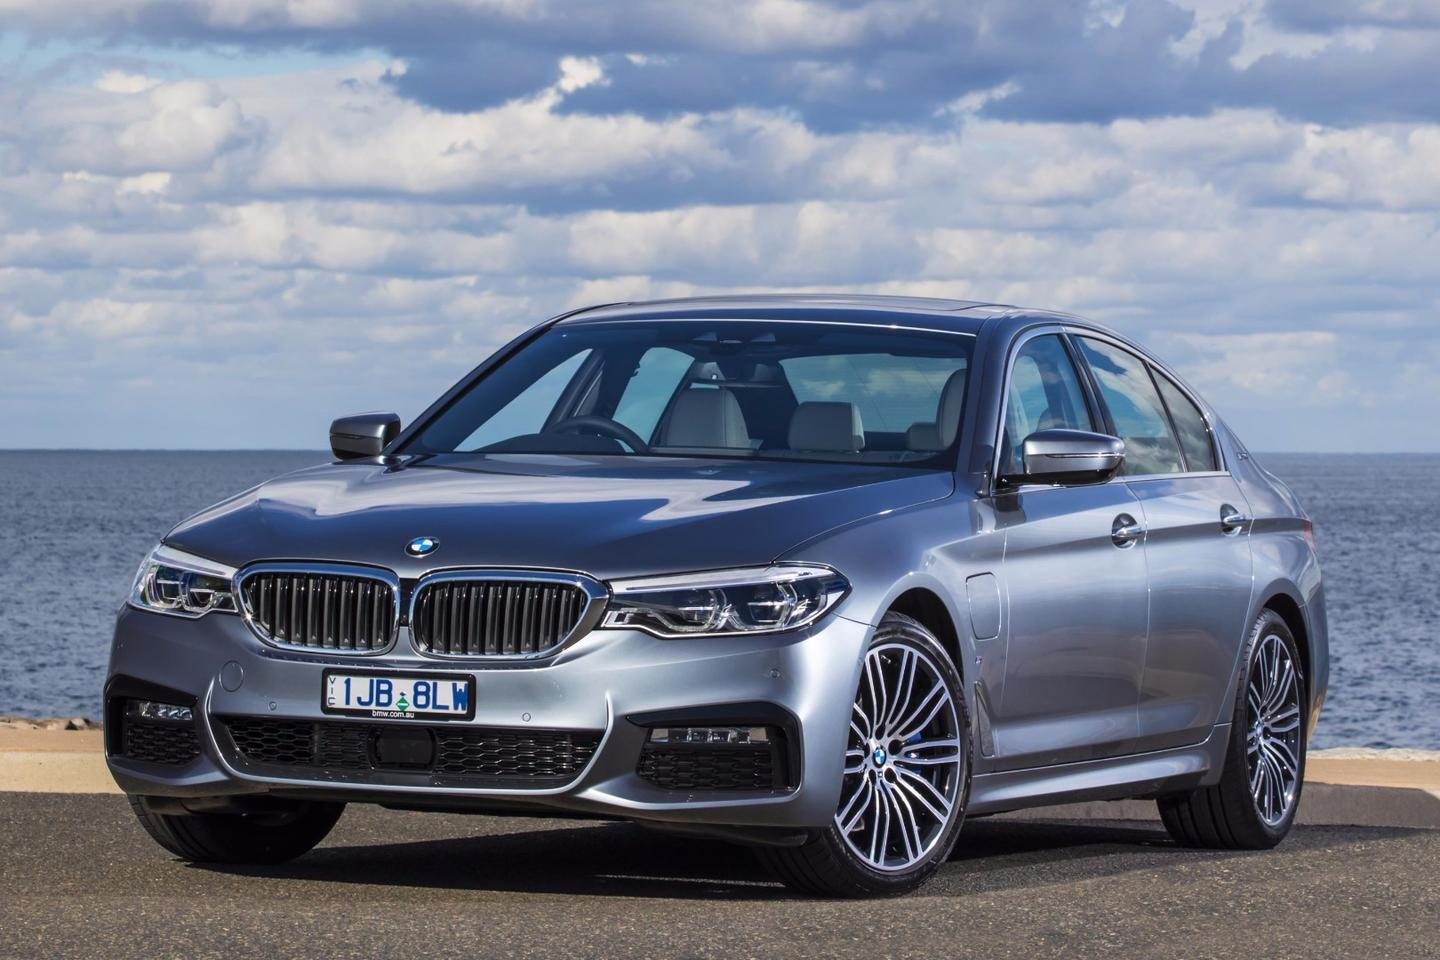 From the outside, the 530e iPerformance looks just like a regular 5 Series